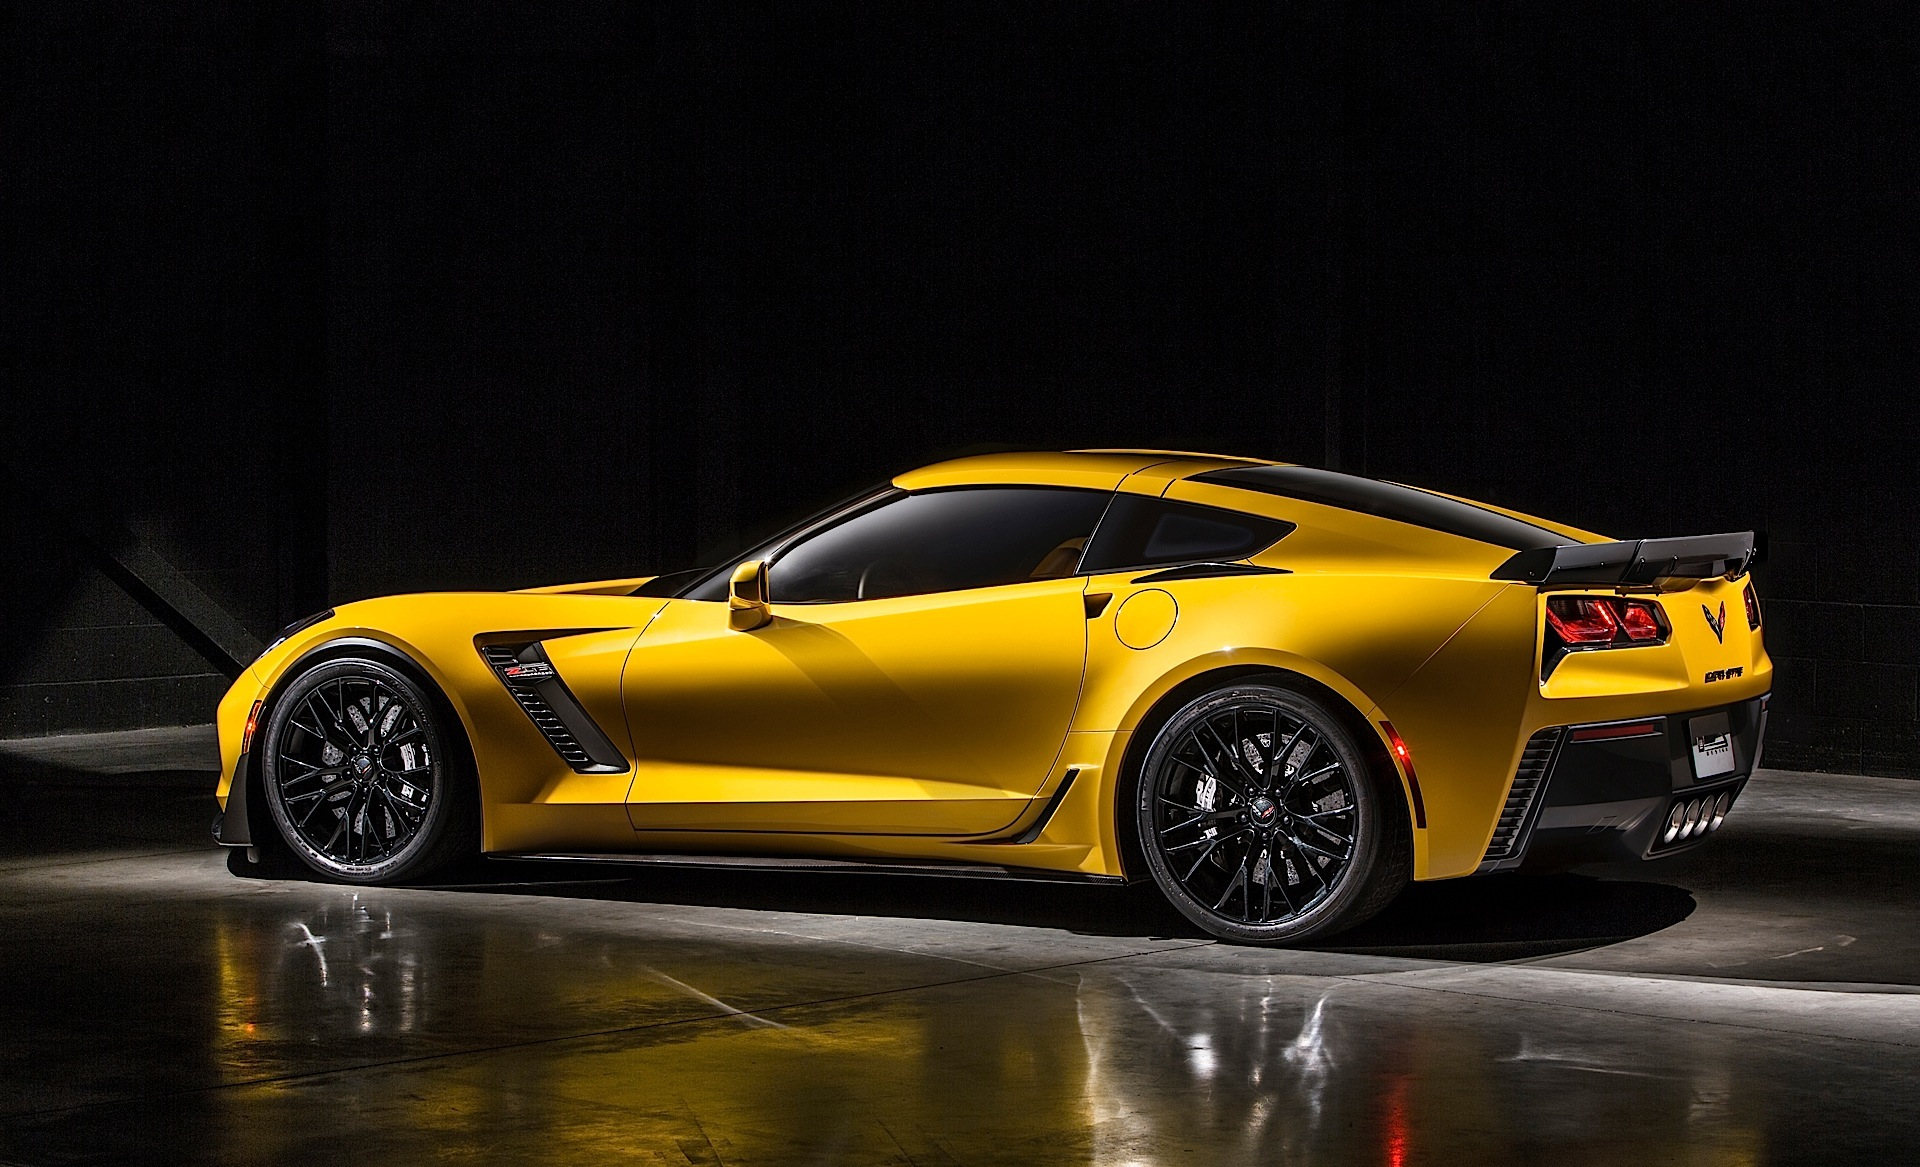 CHEVROLET Corvette Z06 - 2014, 2015, 2016 - autoevolution